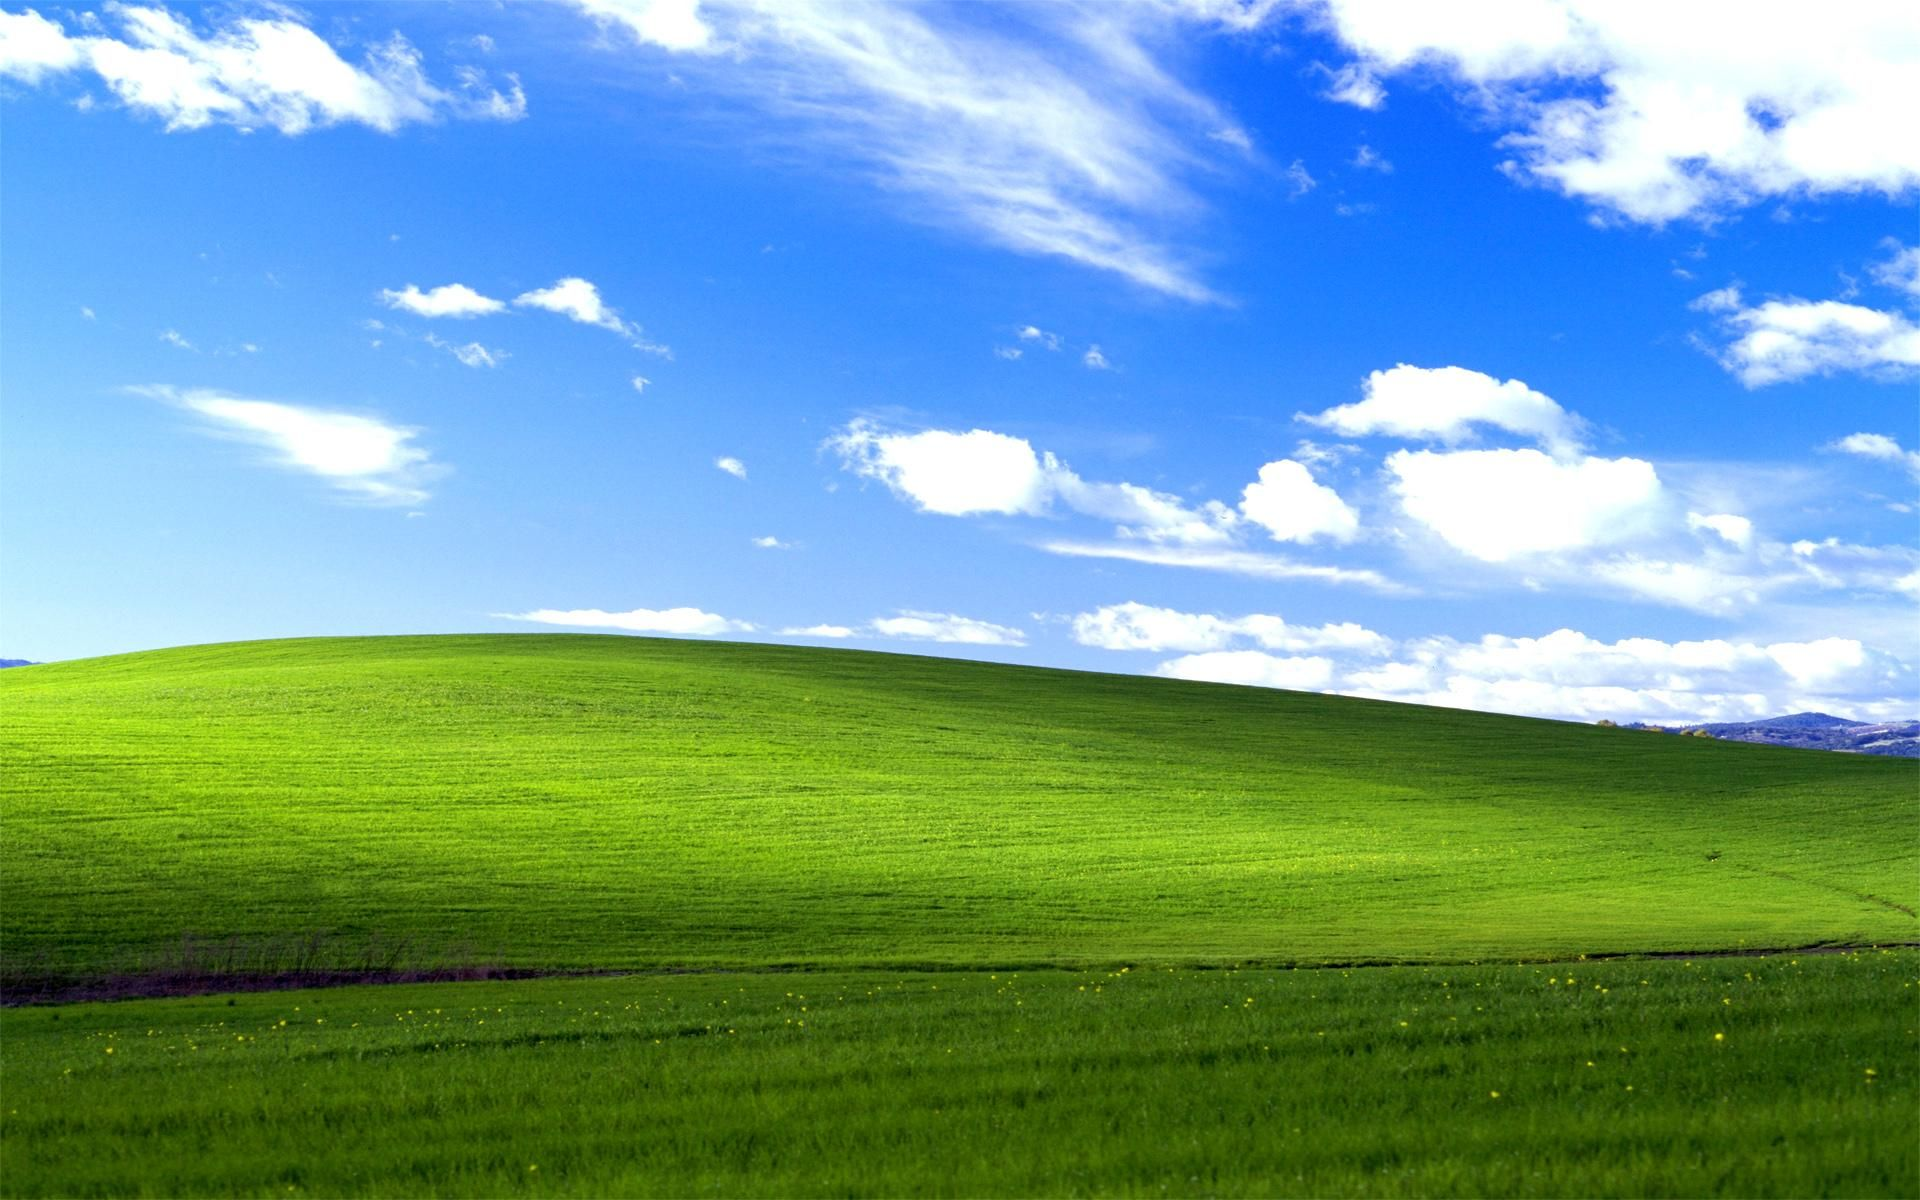 Windows xp wallpaper for iphone